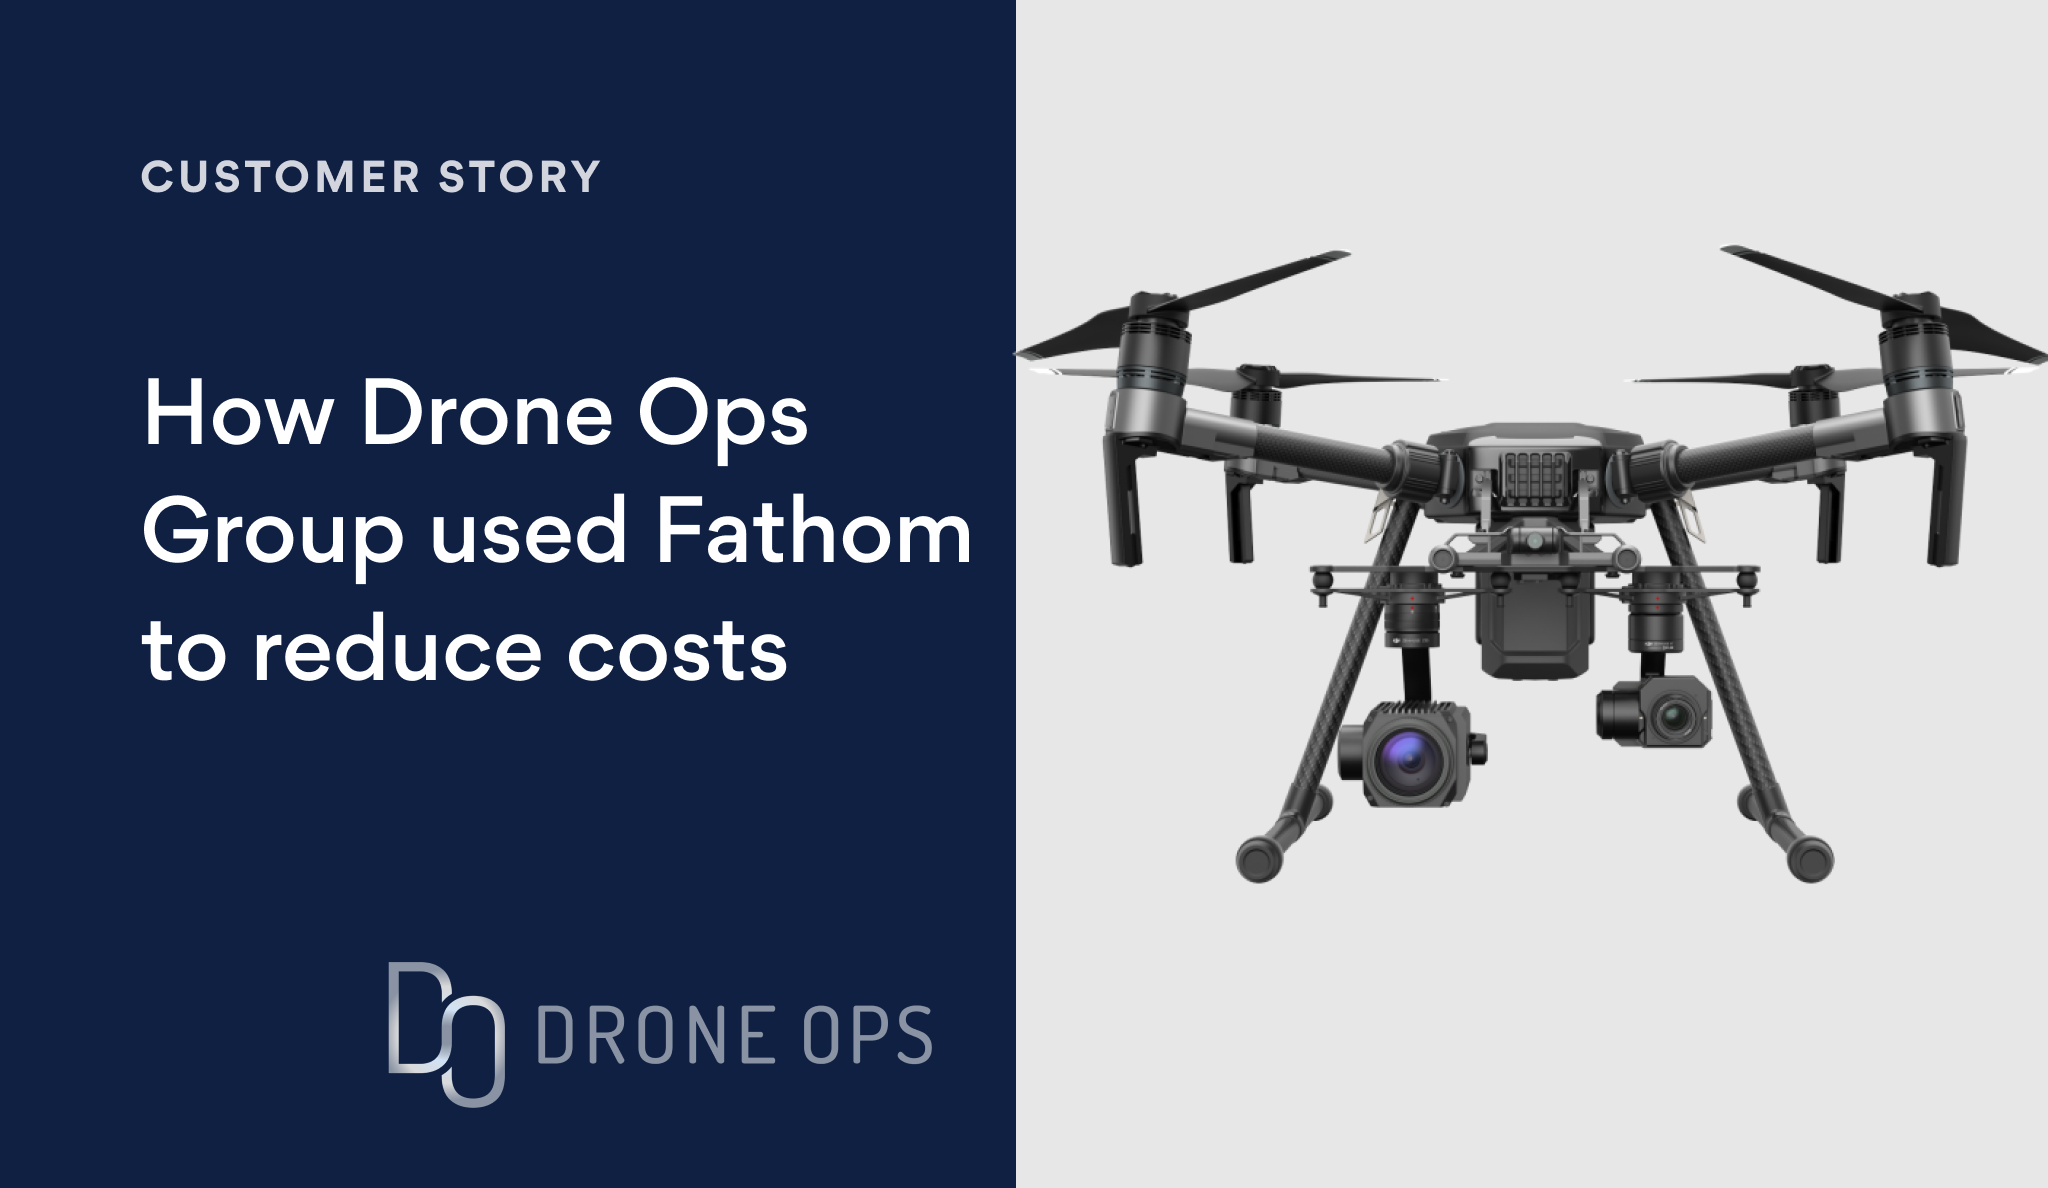 Drone Ops Group